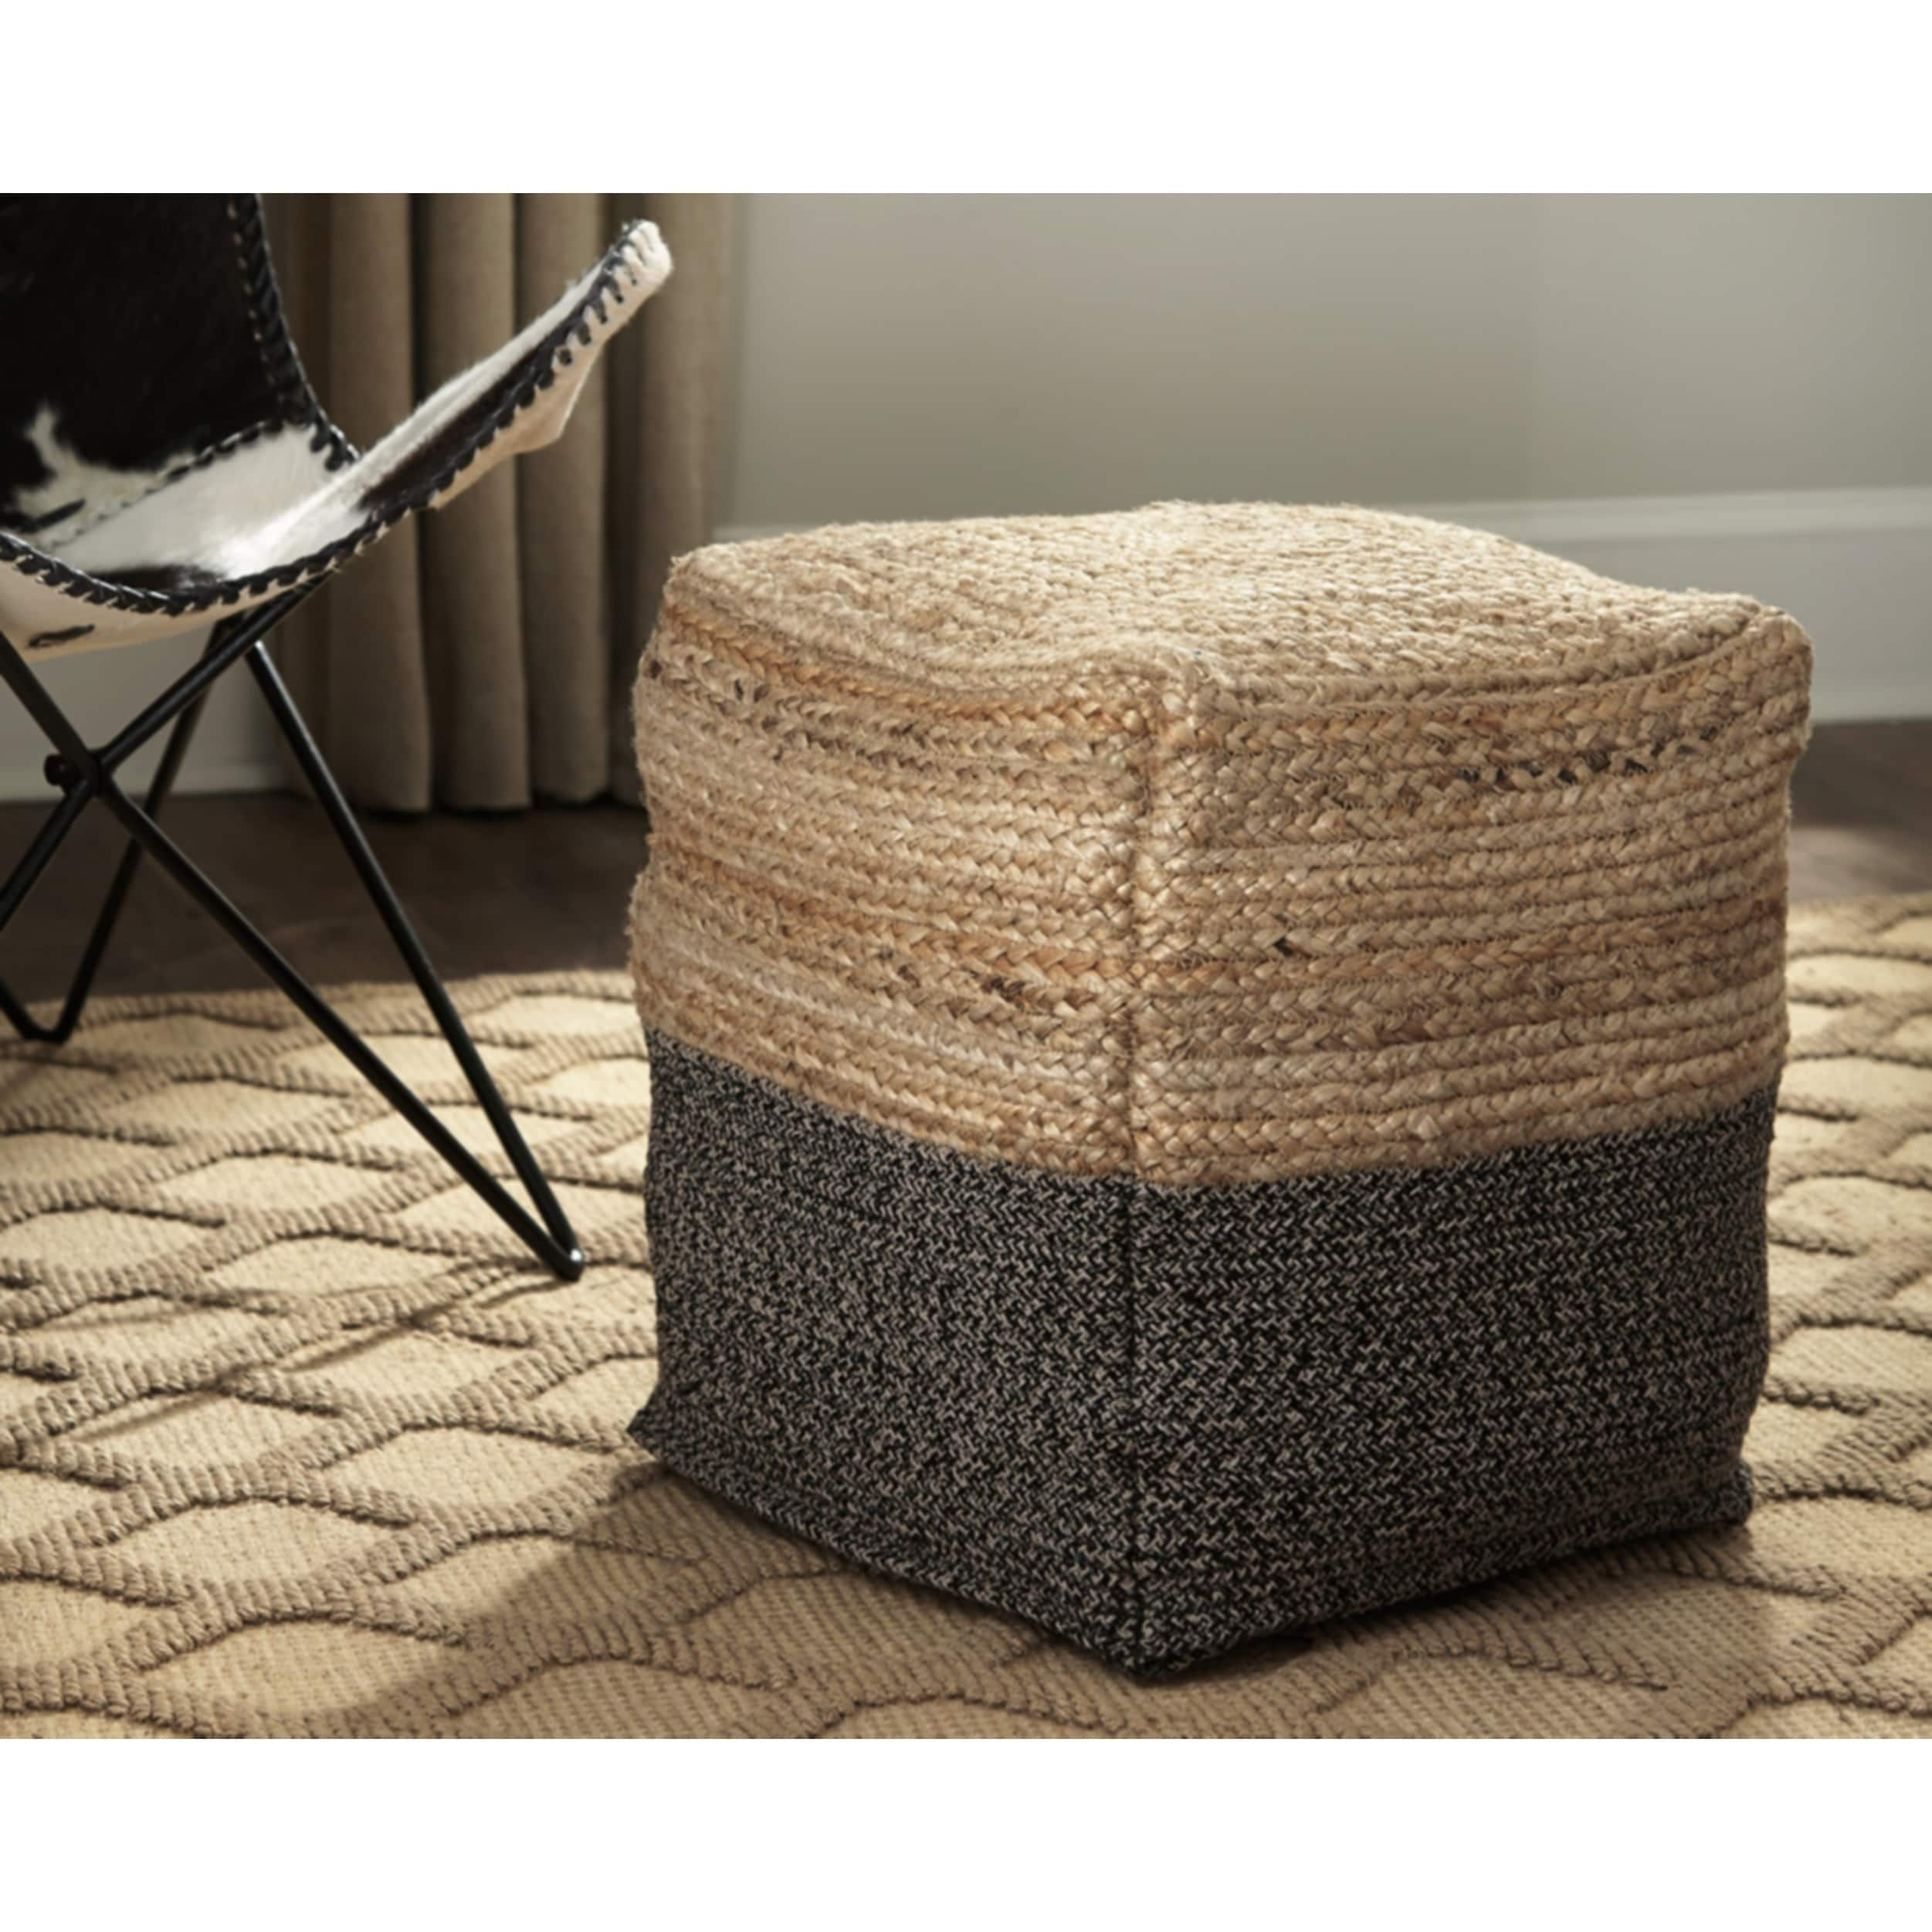 Online Shopping Bedding Furniture Electronics Jewelry Clothing More In 2020 Pouf Ottoman Ottoman Furniture